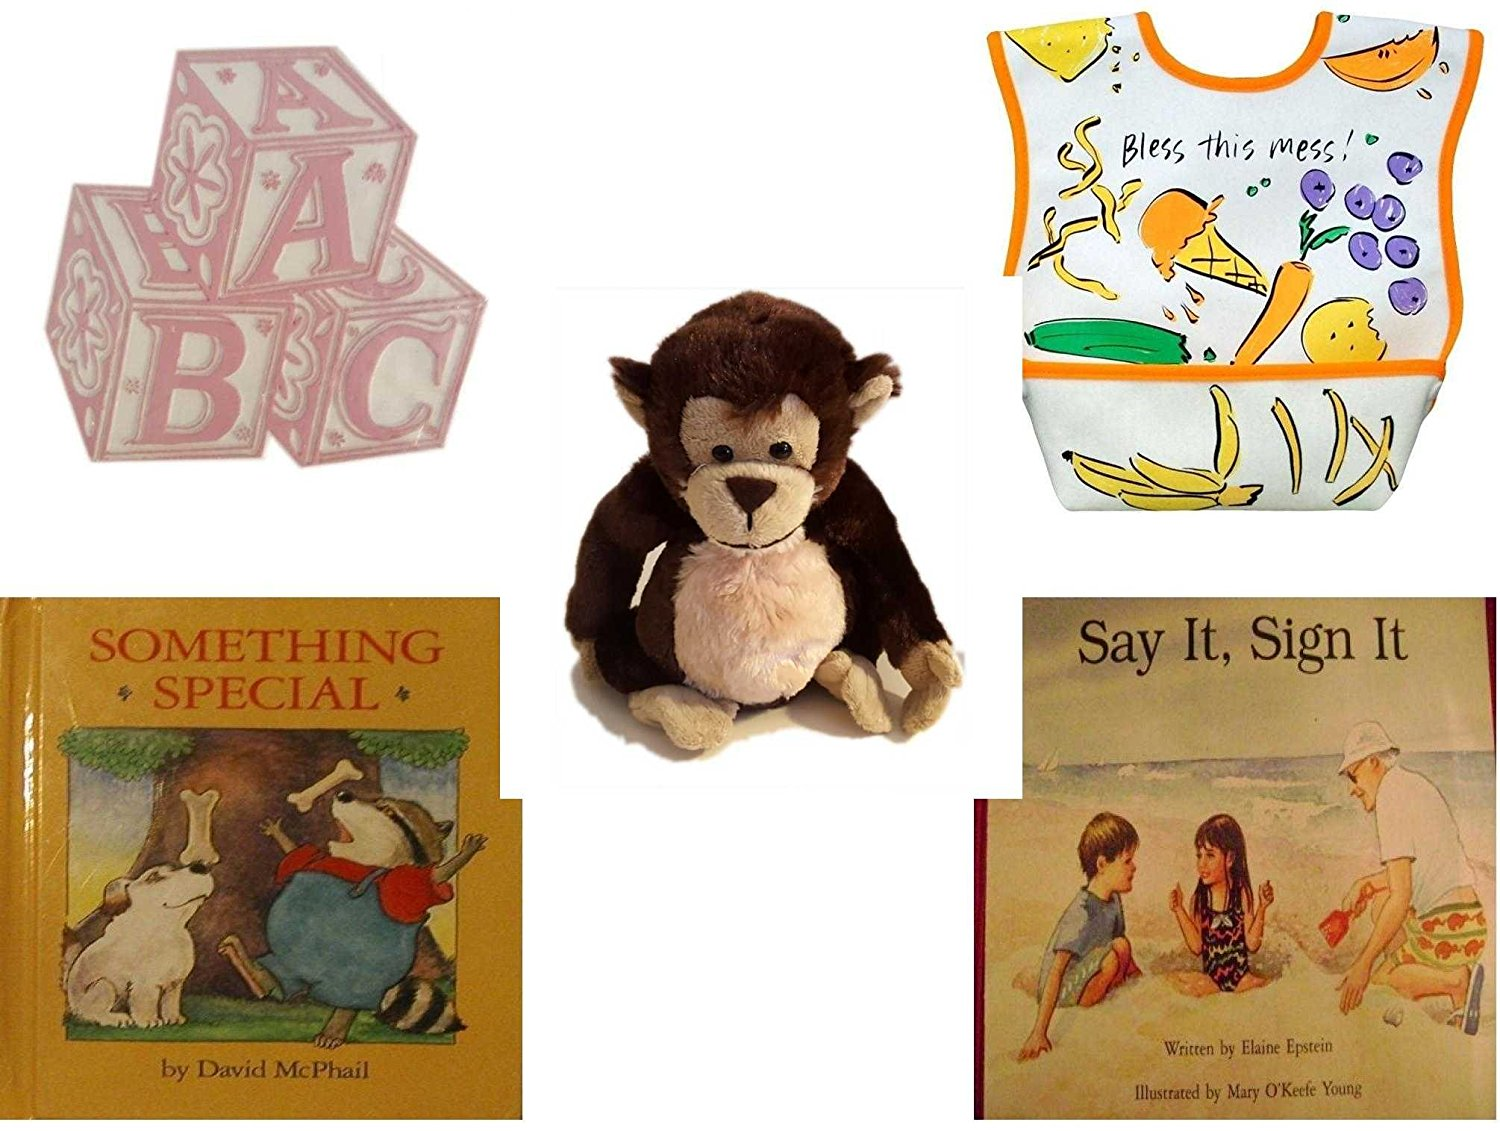 Children's Gift Bundle - Ages 0-2 [5 Piece] - ABC Baby Blocks Cake Topper Pink Girl - Dex Dura Bib Large for ages 6 - 24 Months - Bless This Mess - Ganz Adorable Chimpanzee Plush - Something Special